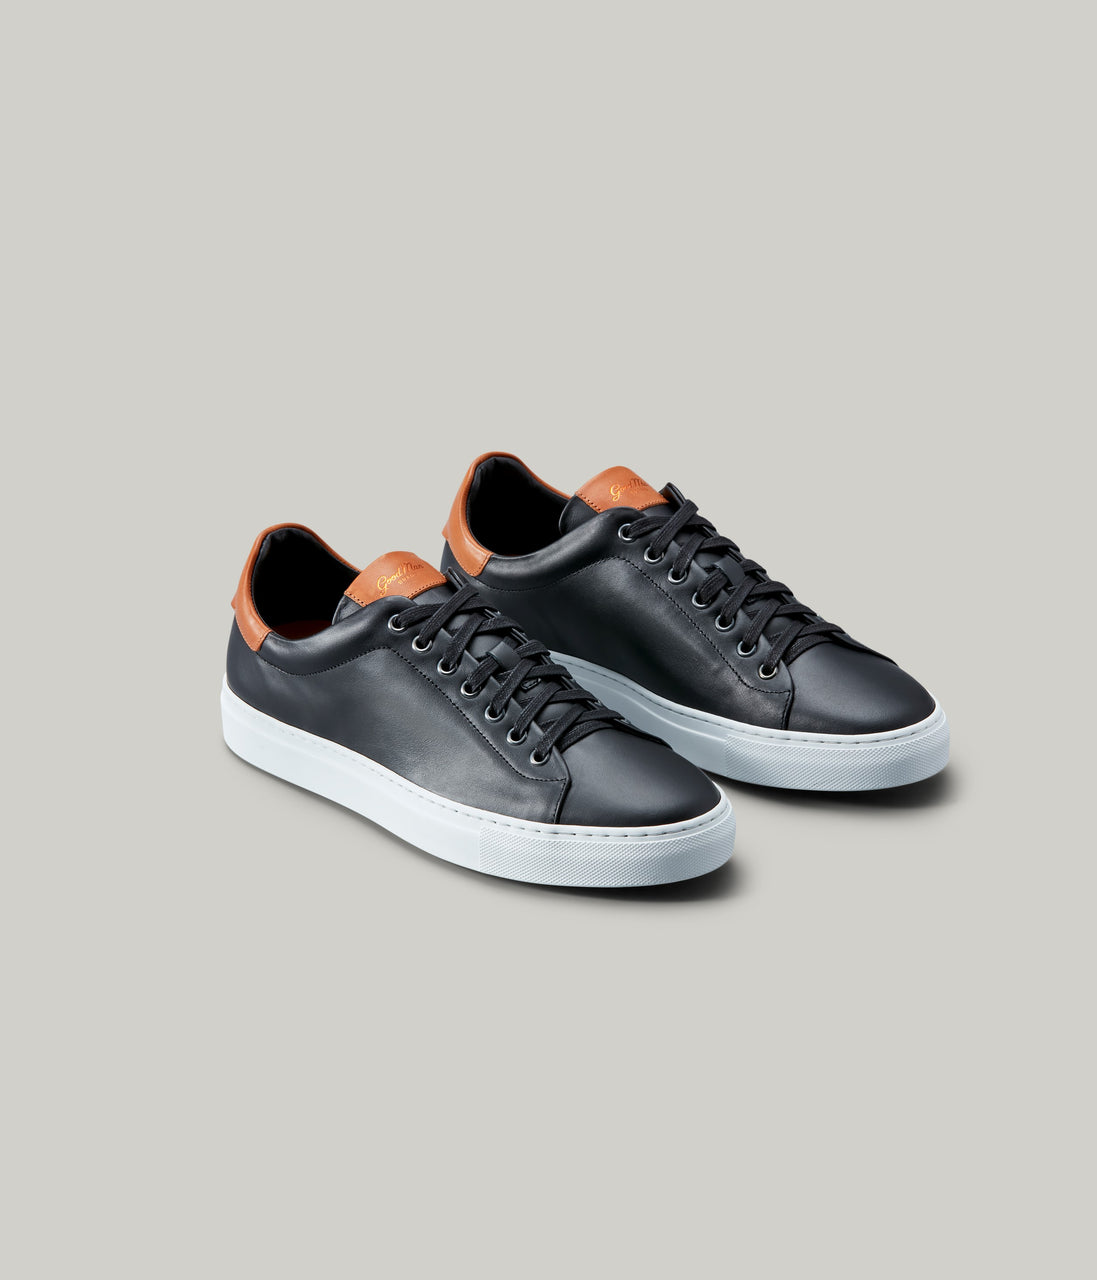 Legend Lo Top Sneaker - Black / Vachetta - Good Man Brand - Legend Lo Top Sneaker - Black / Vachetta